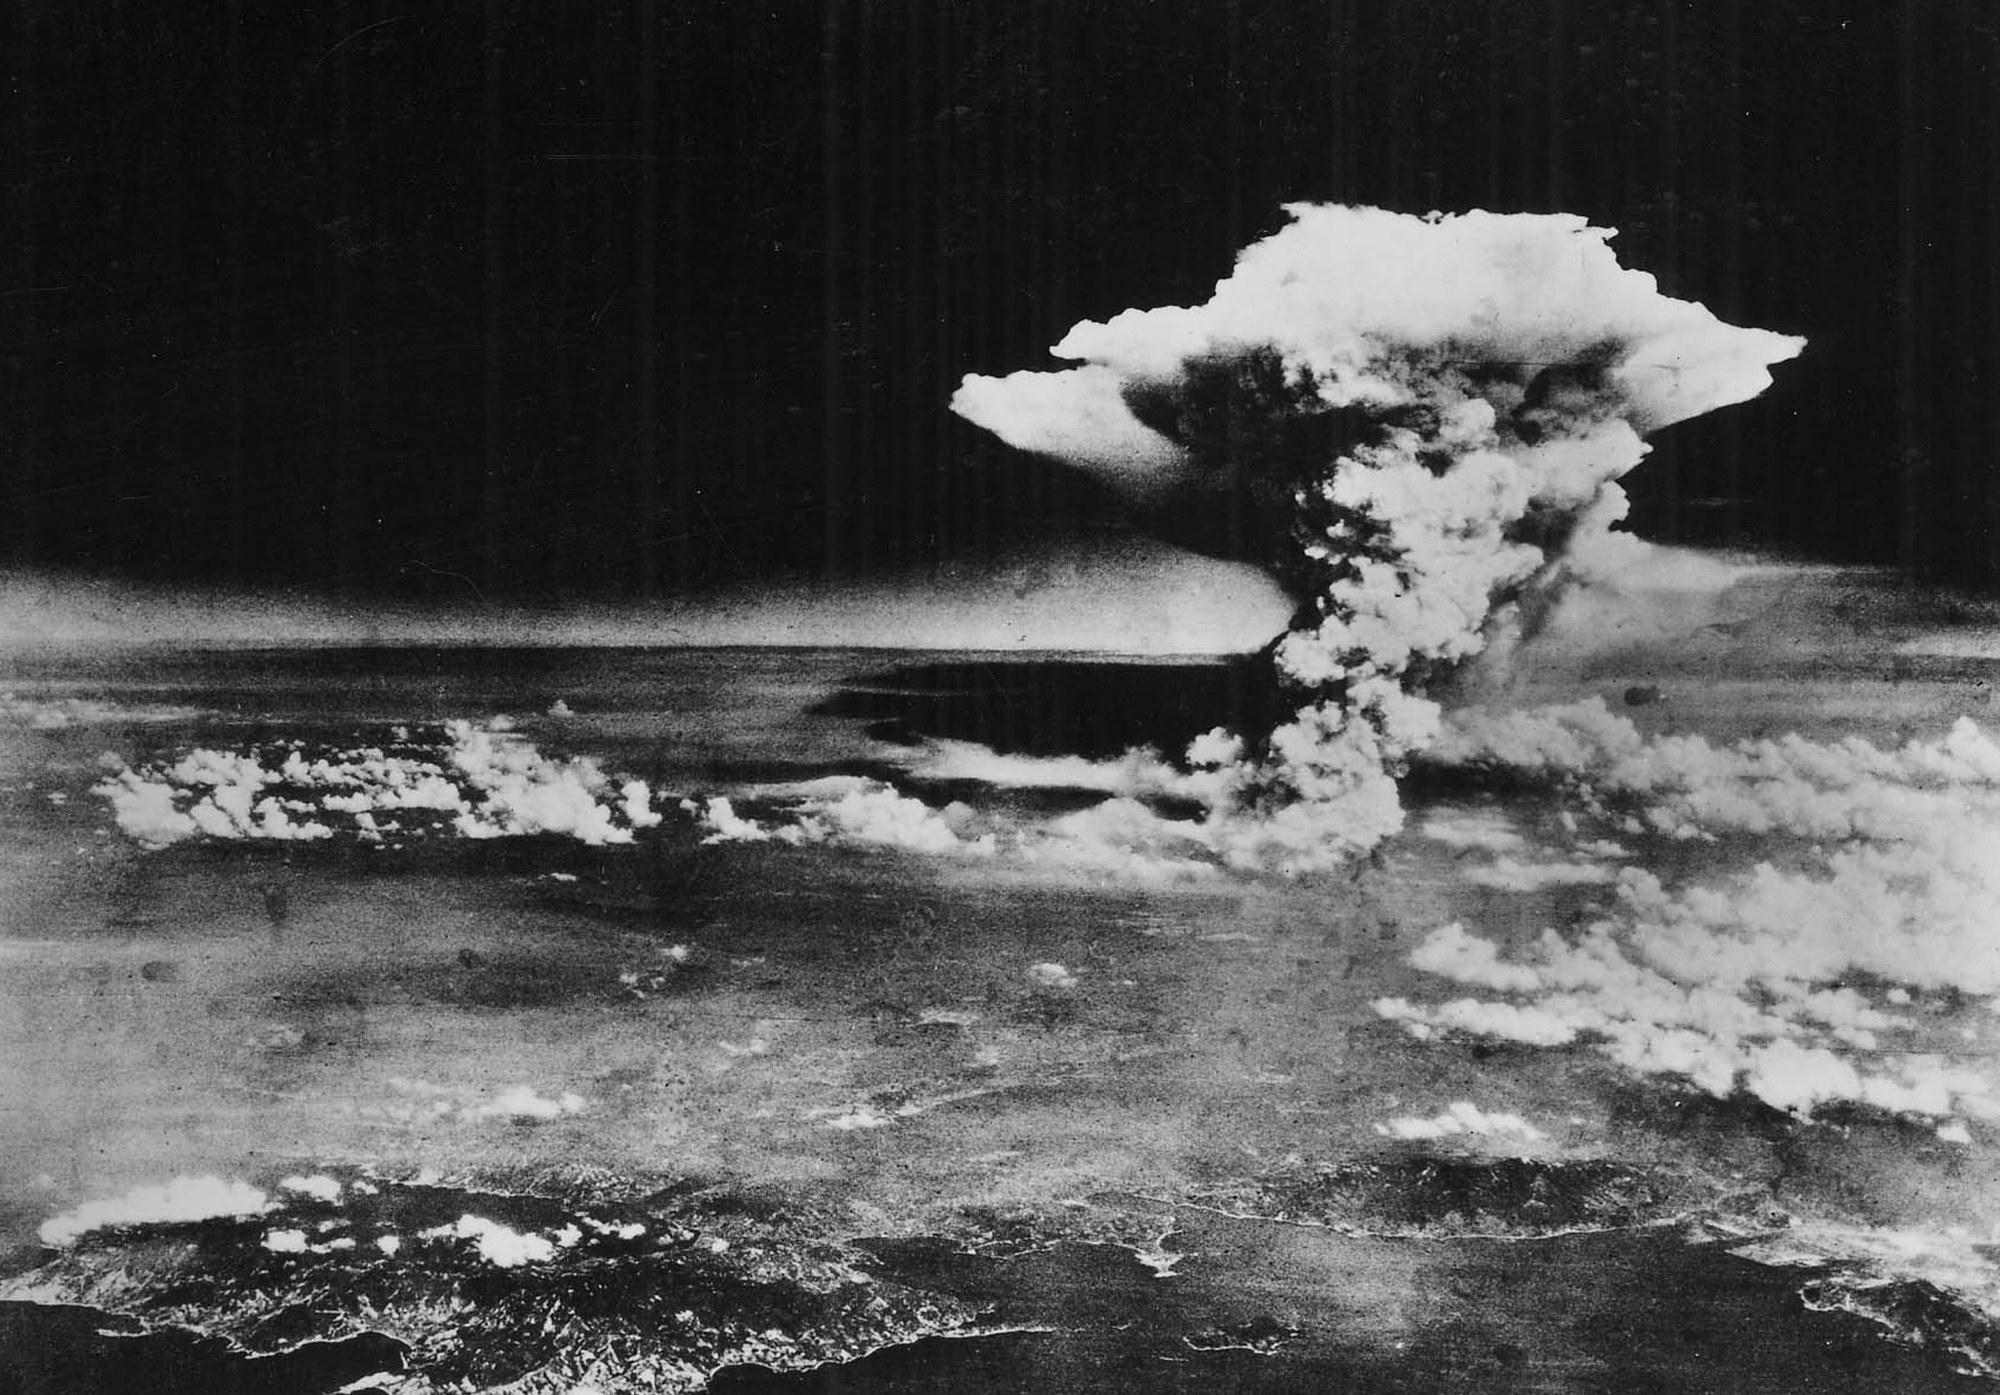 A mushroom cloud seen from the air over the city of Hiroshima